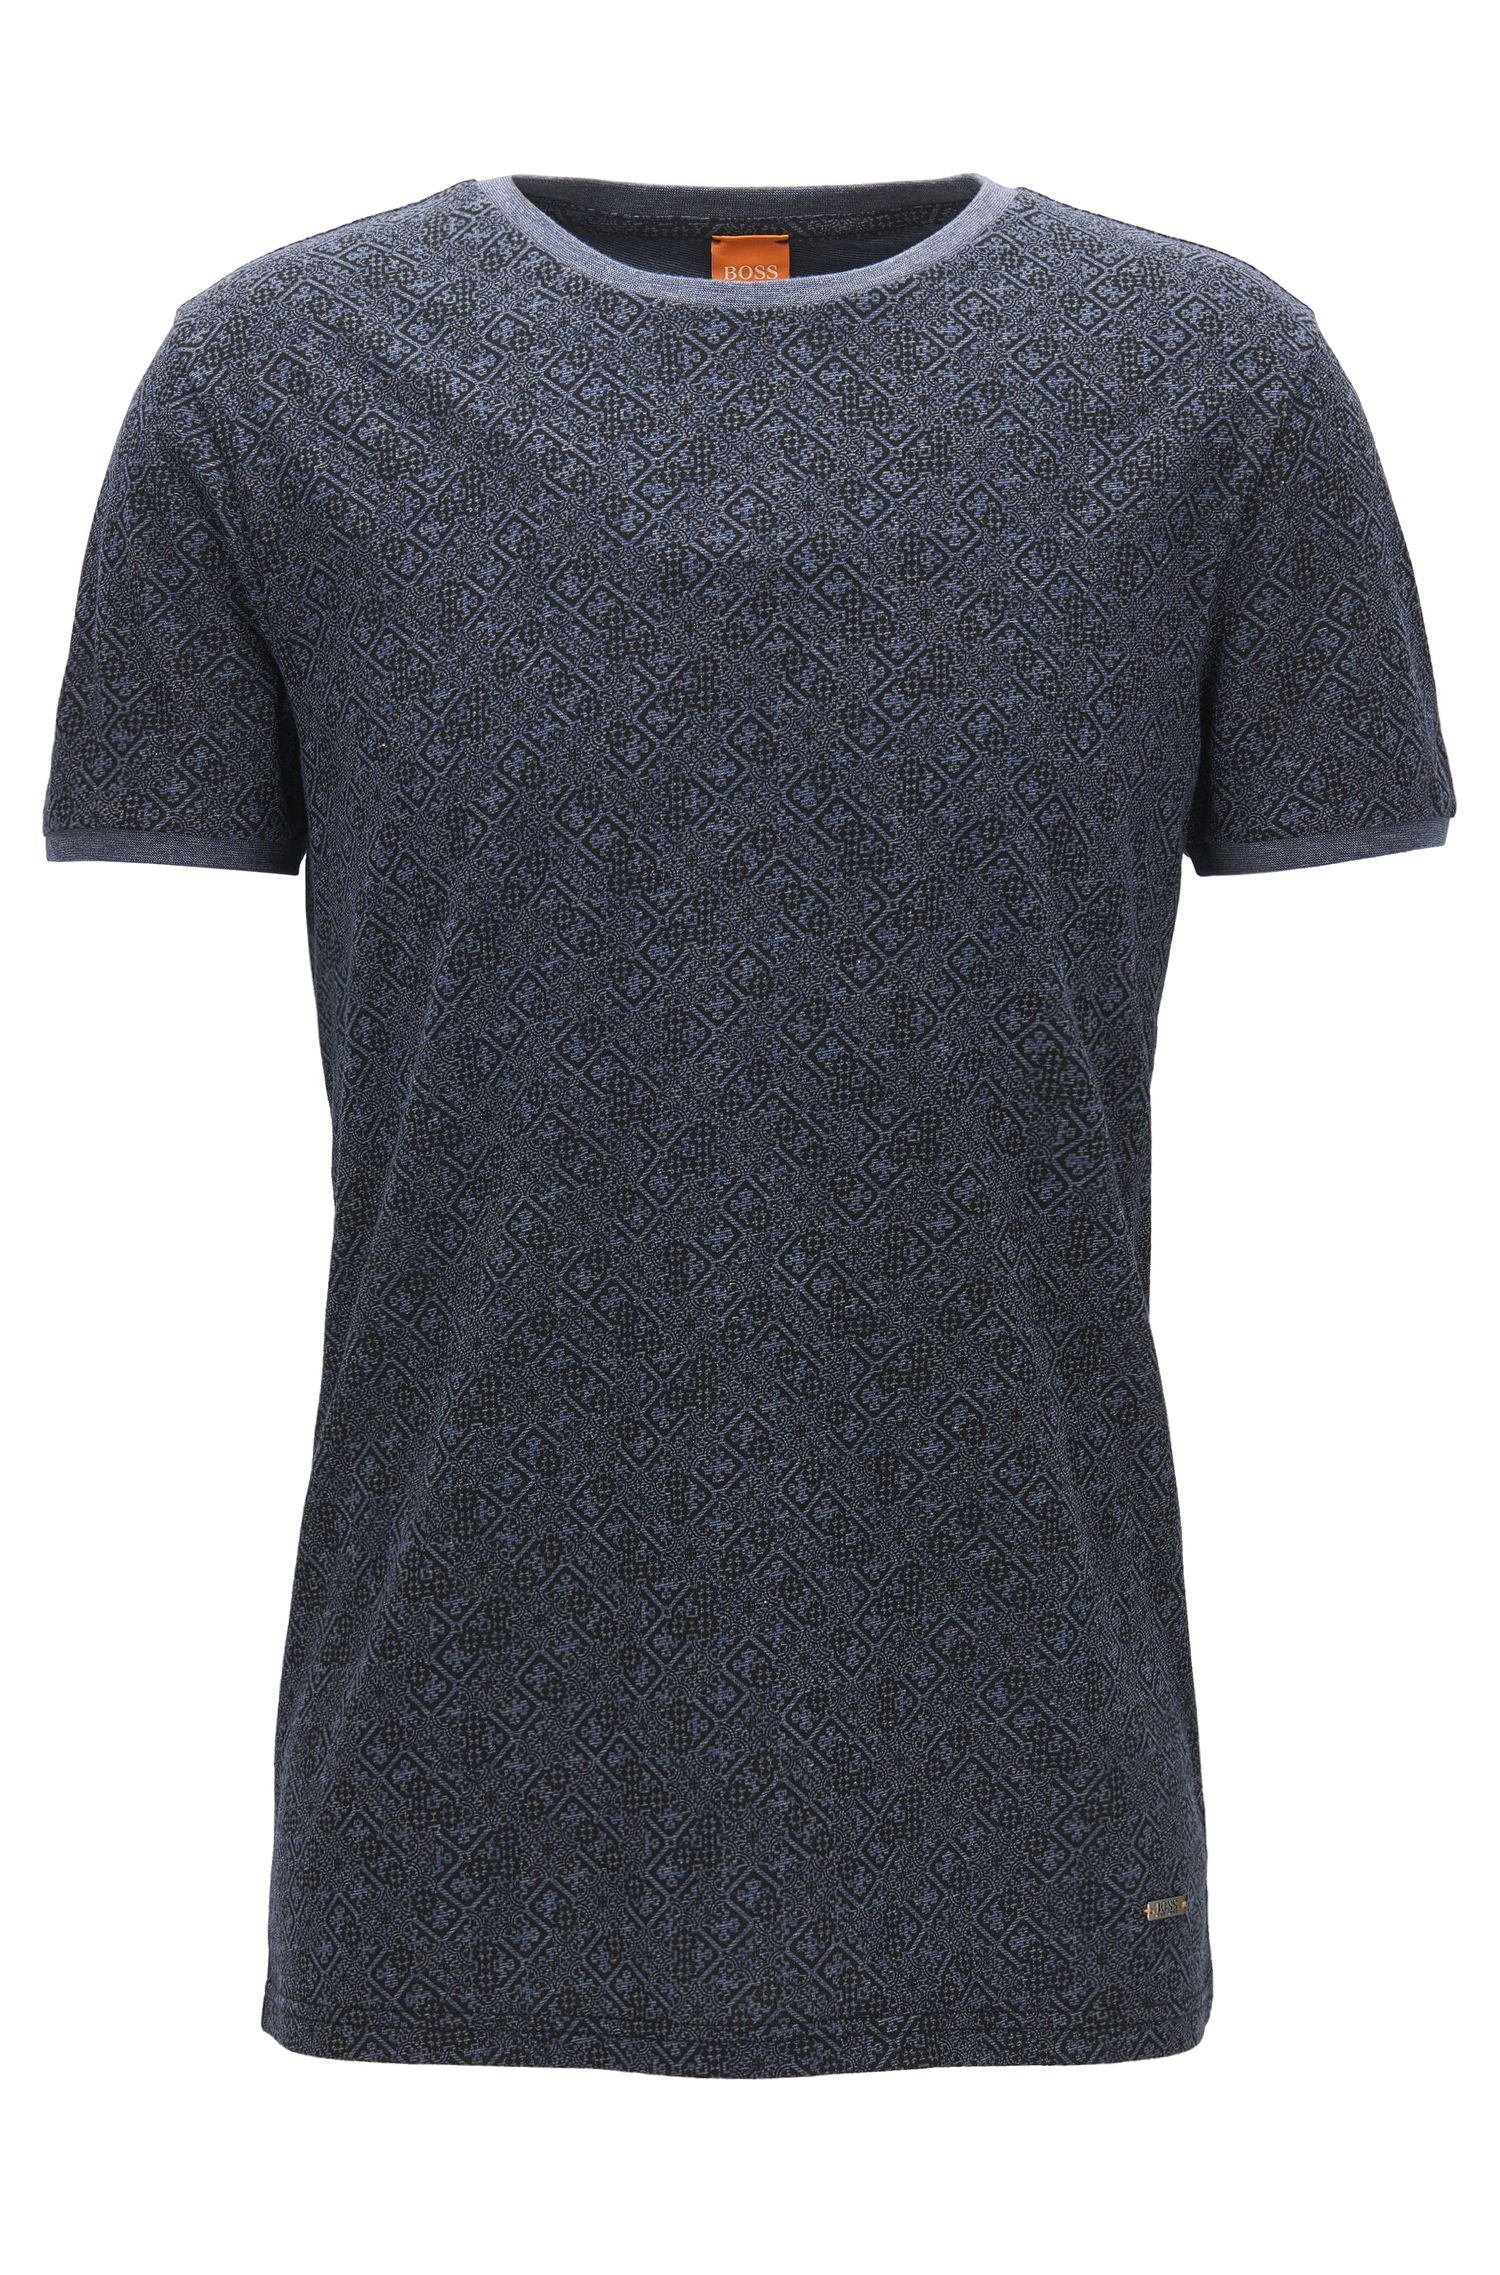 Printed cotton T-shirt in a regular fit